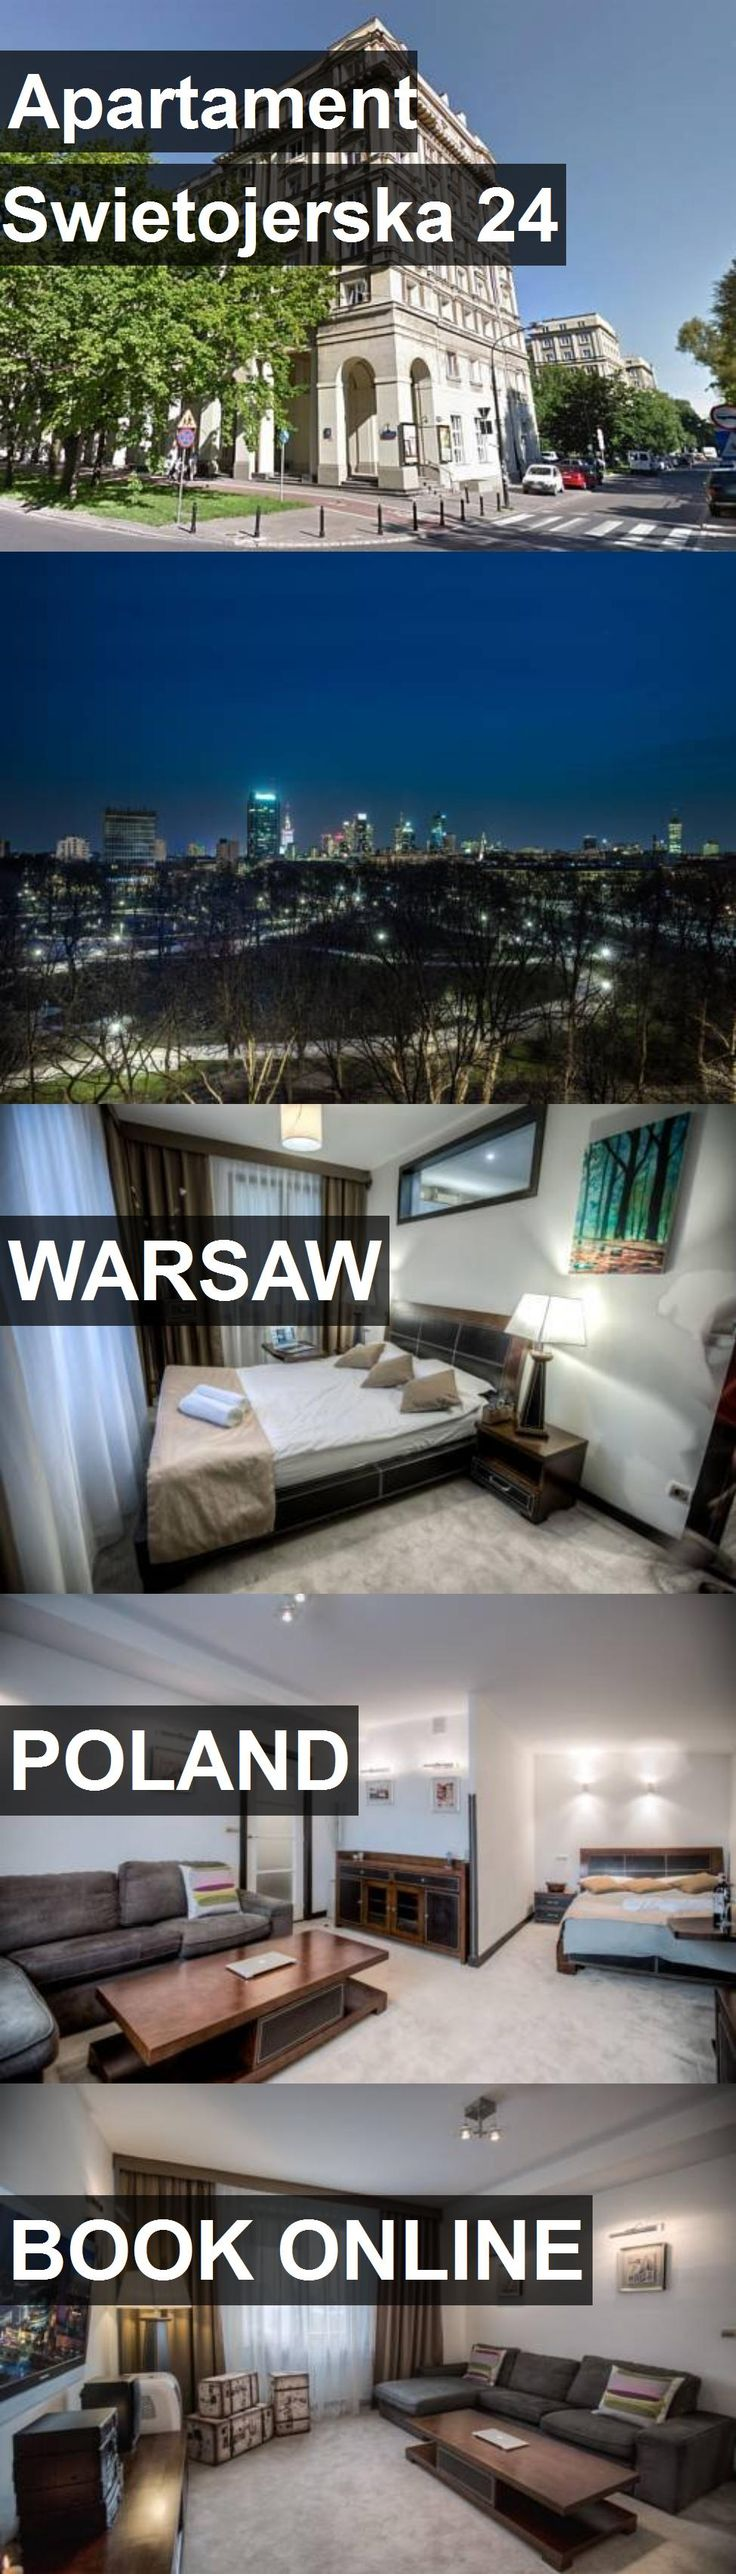 Hotel Apartament Swietojerska 24 in Warsaw, Poland. For more information, photos, reviews and best prices please follow the link. #Poland #Warsaw #travel #vacation #hotel